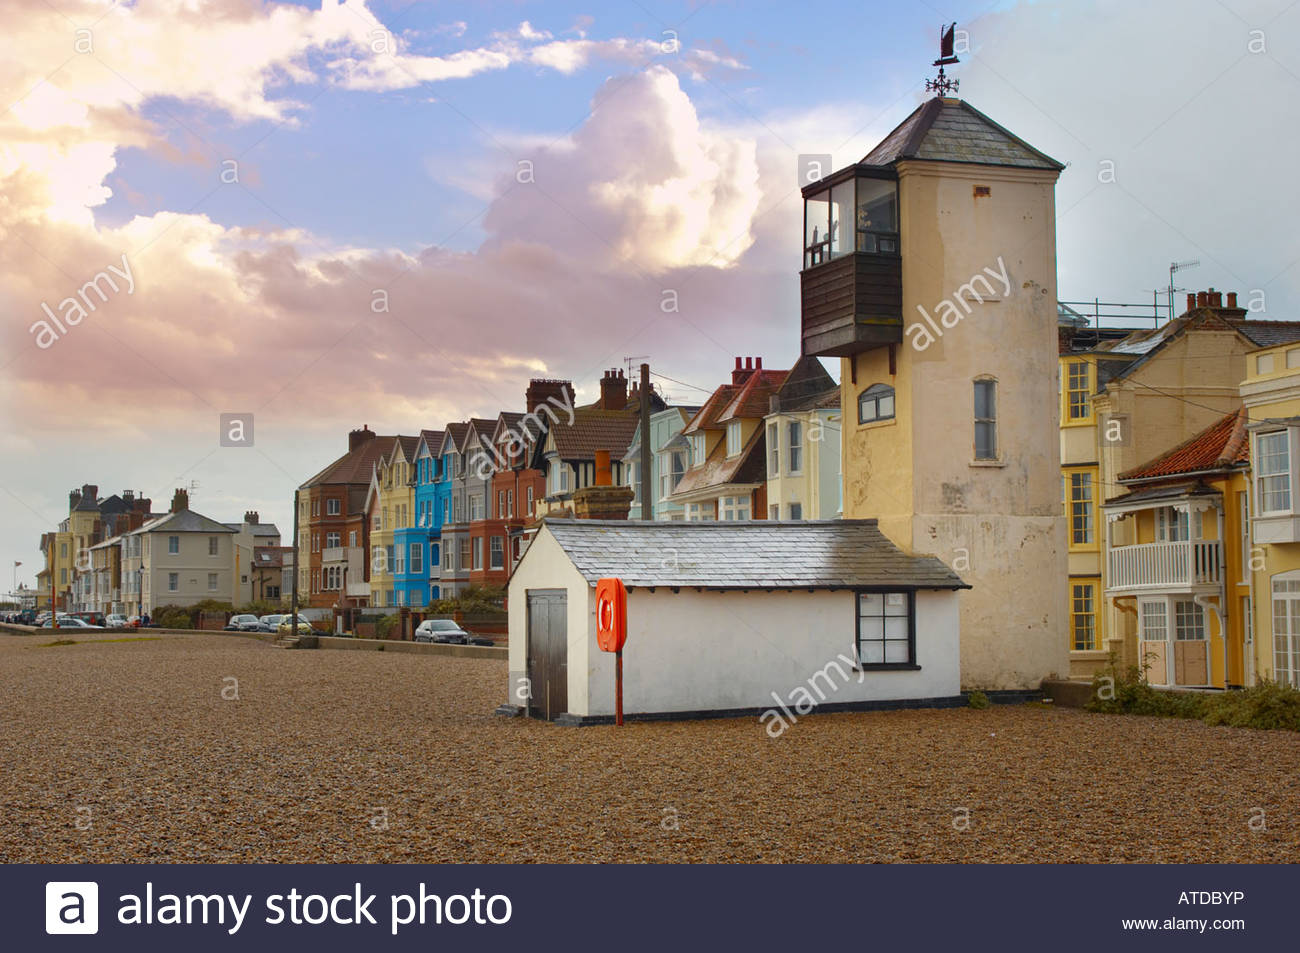 Aldeburgh houses and fisherman's lookout tower on the sea front. Suffolk England - Stock Image